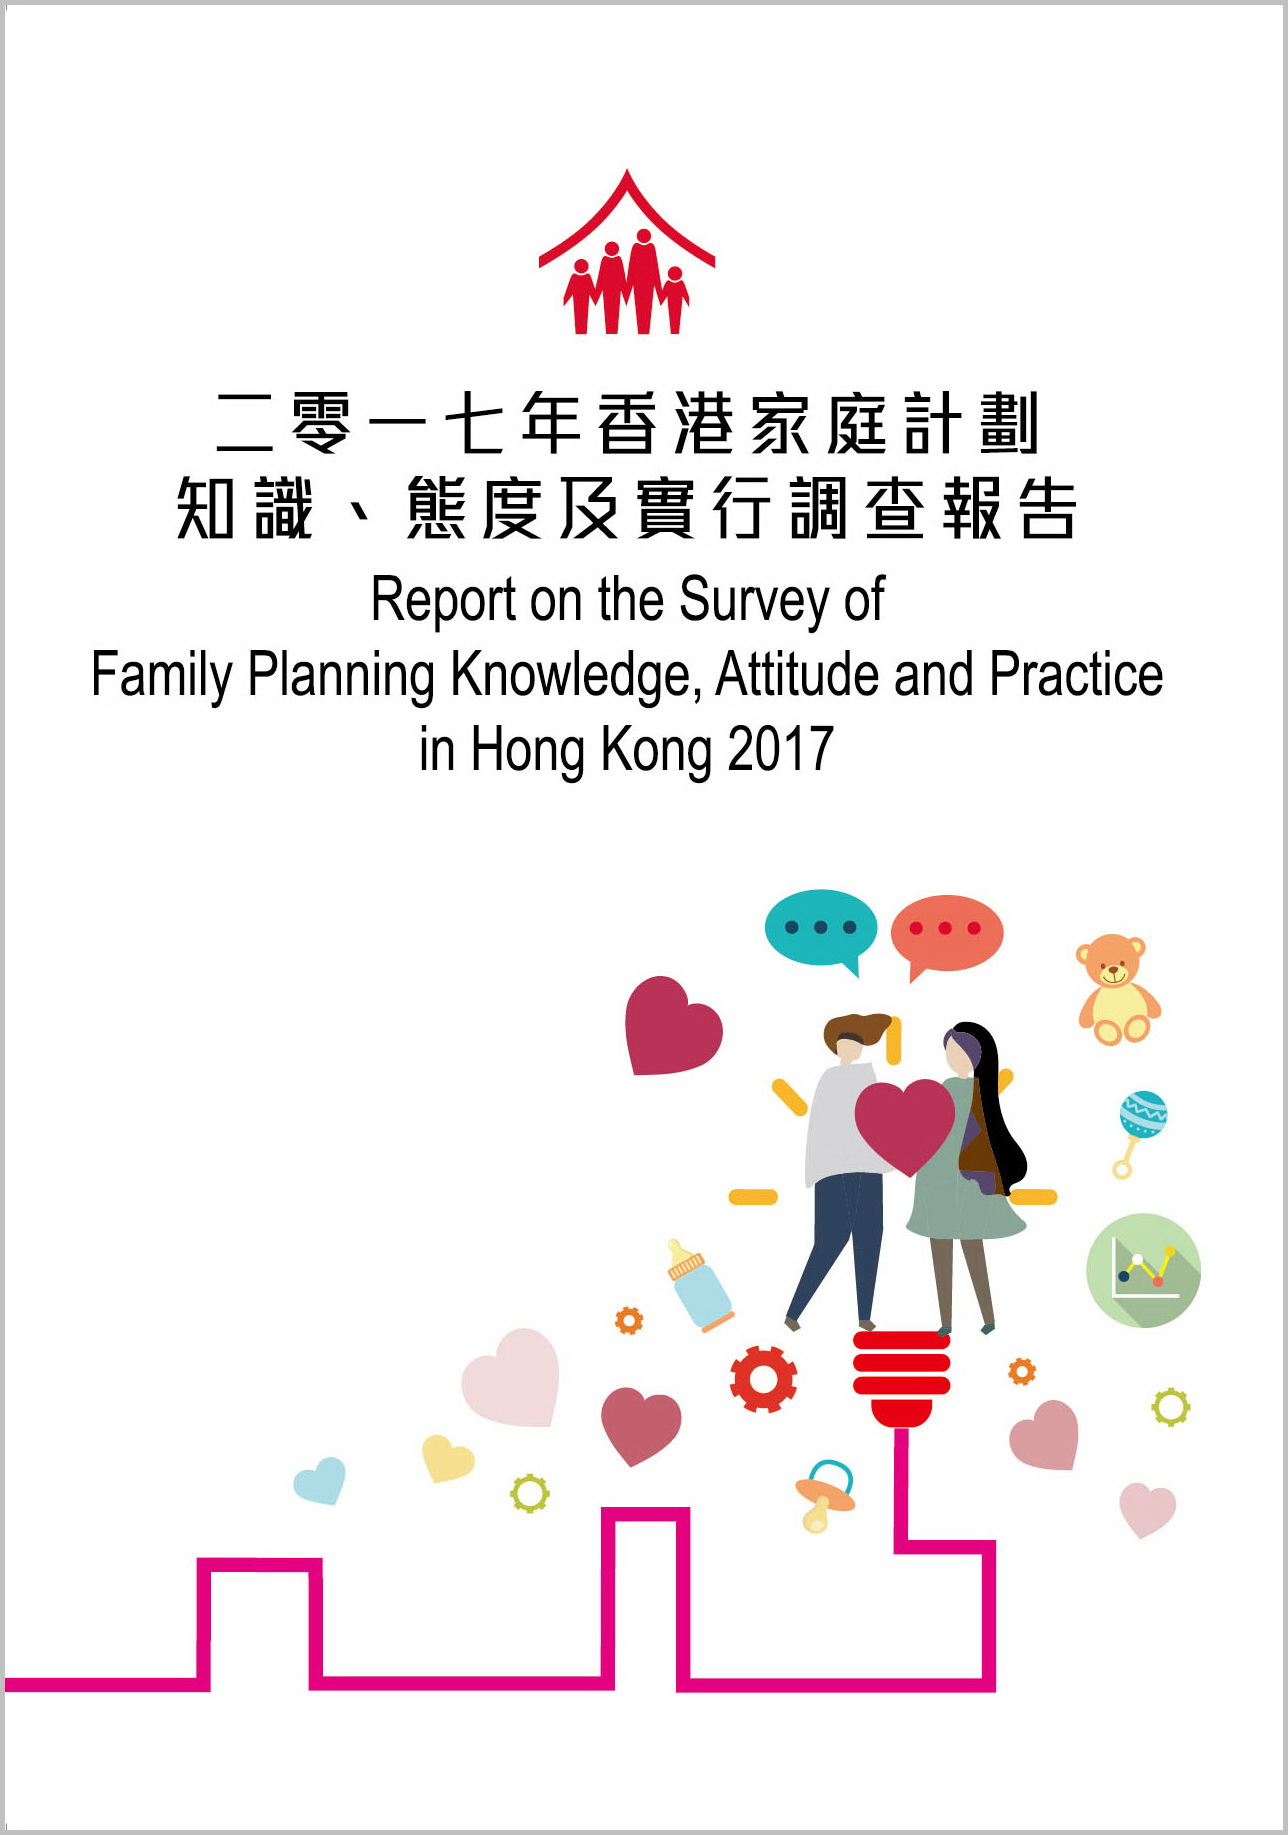 Report on the Survey of Family Planning Knowledge, Attitude and Practice in Hong Kong 2017